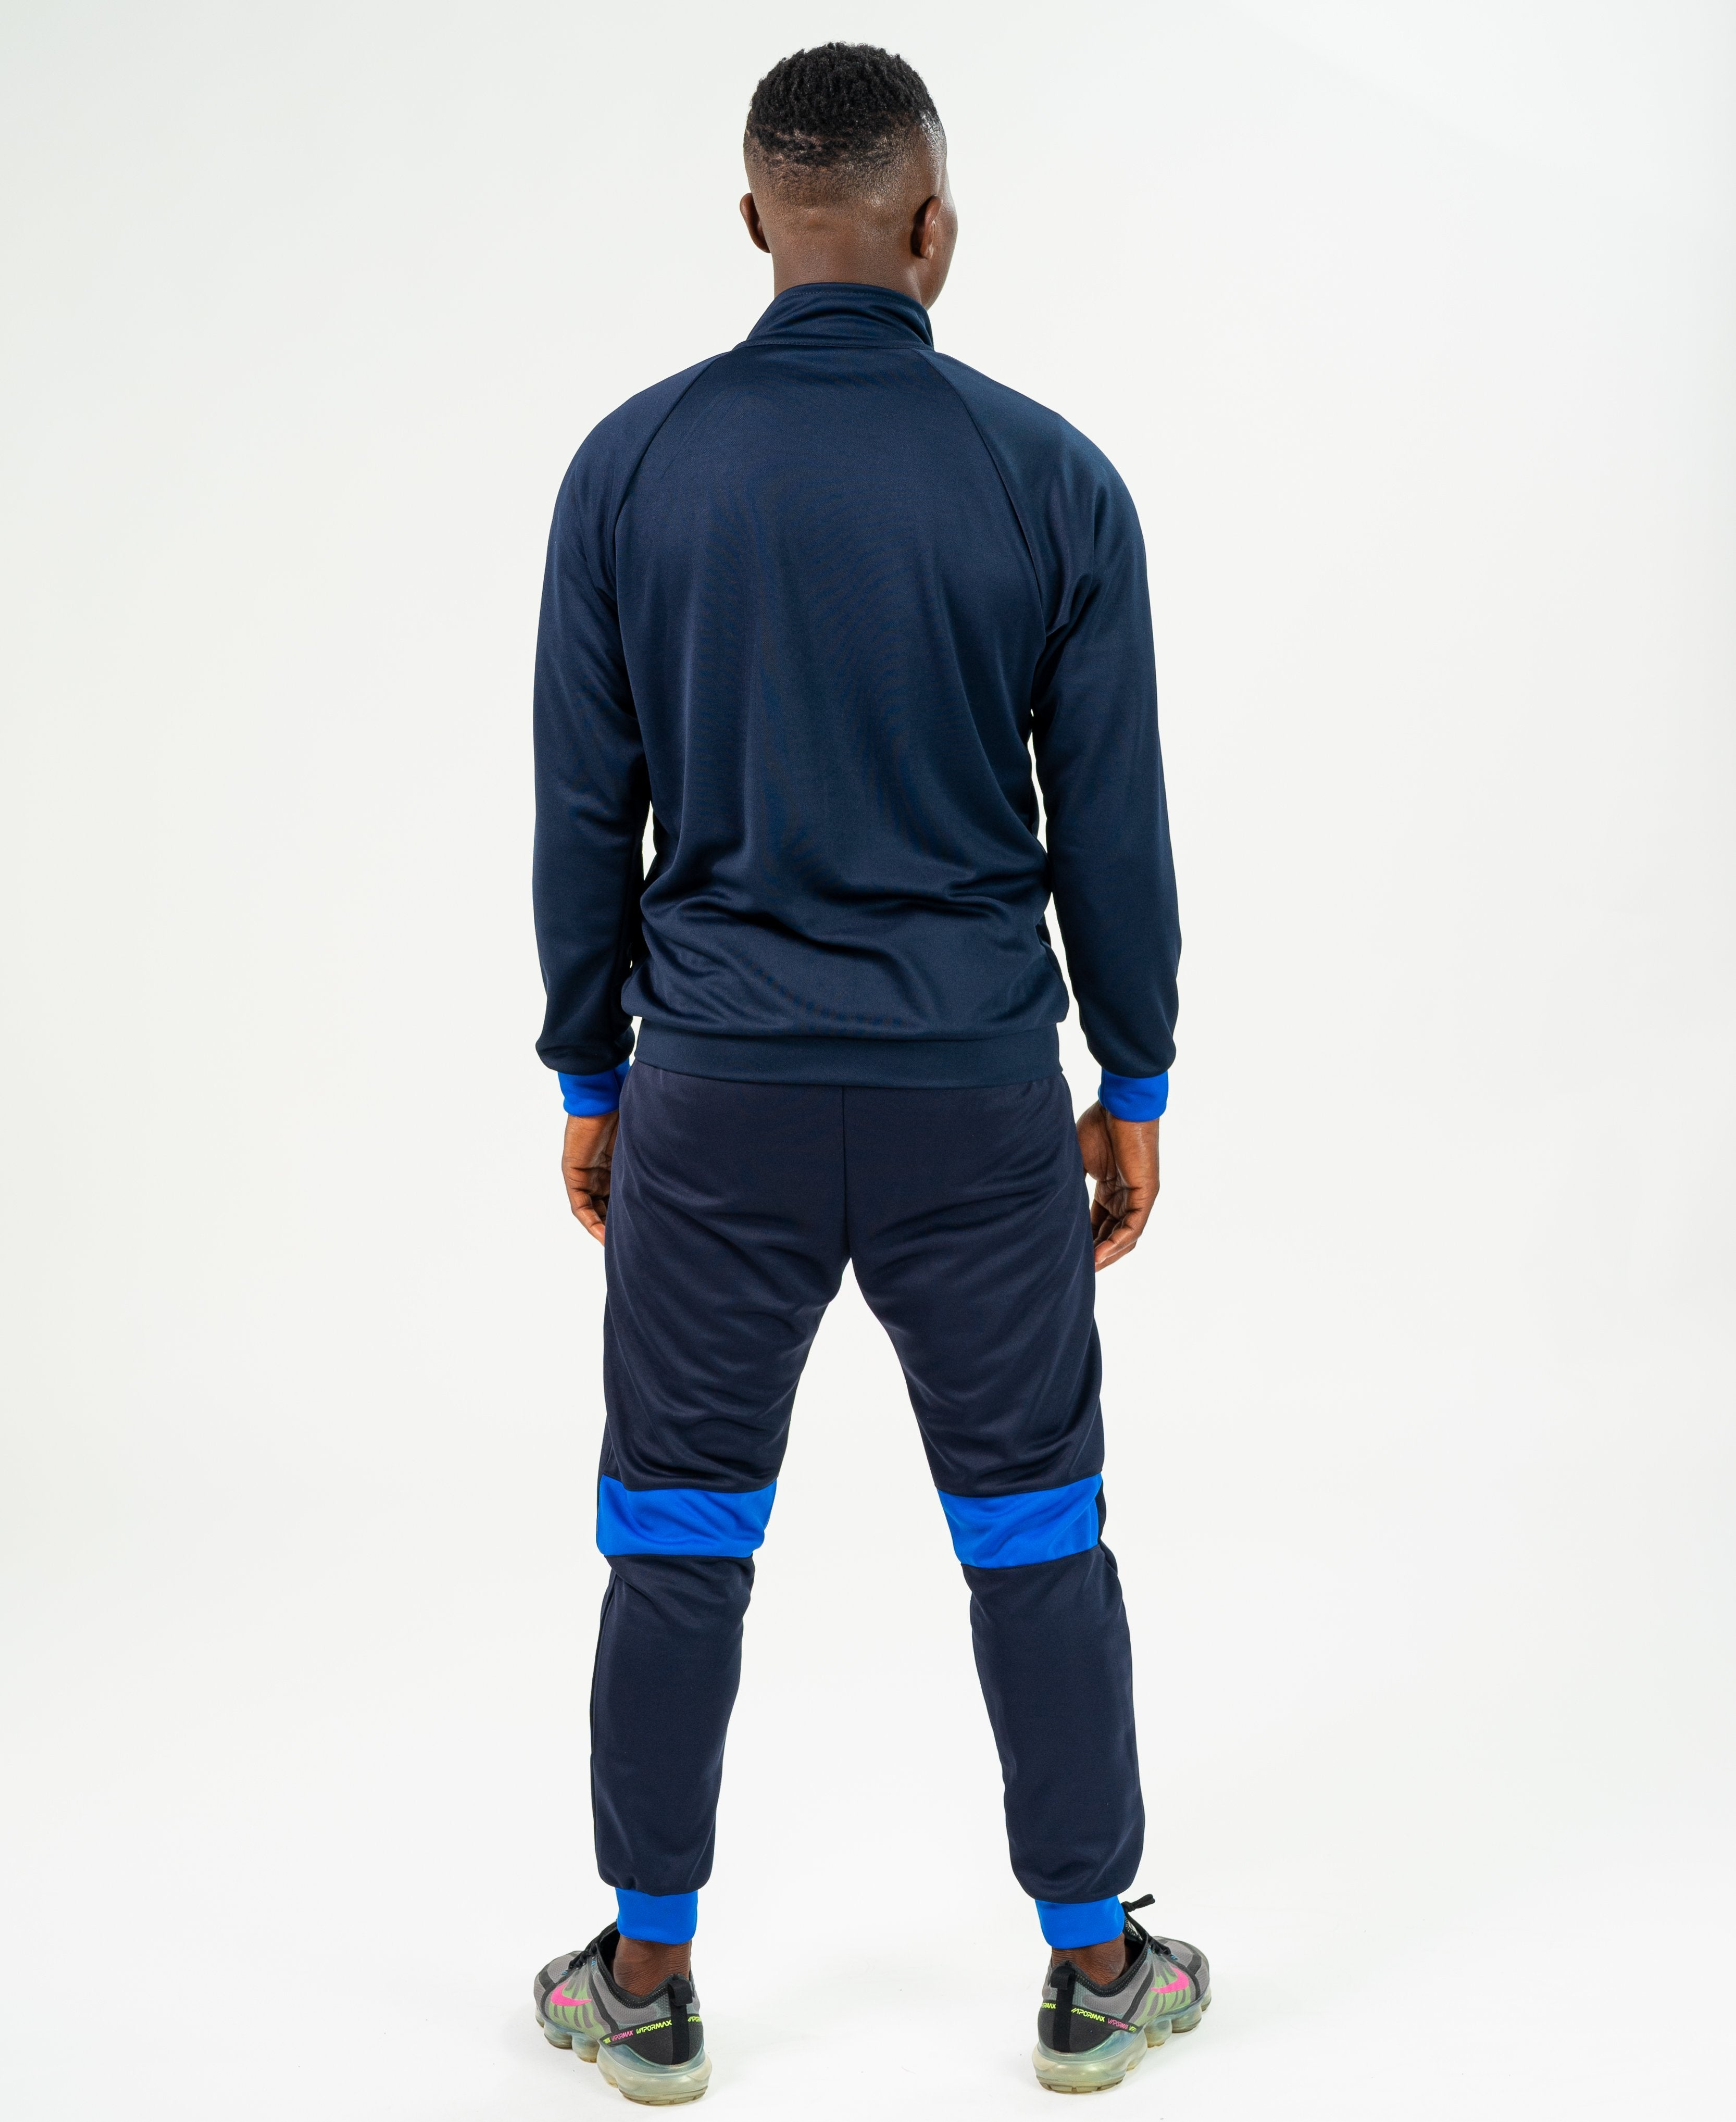 Sport tracksuit - Fatai Style